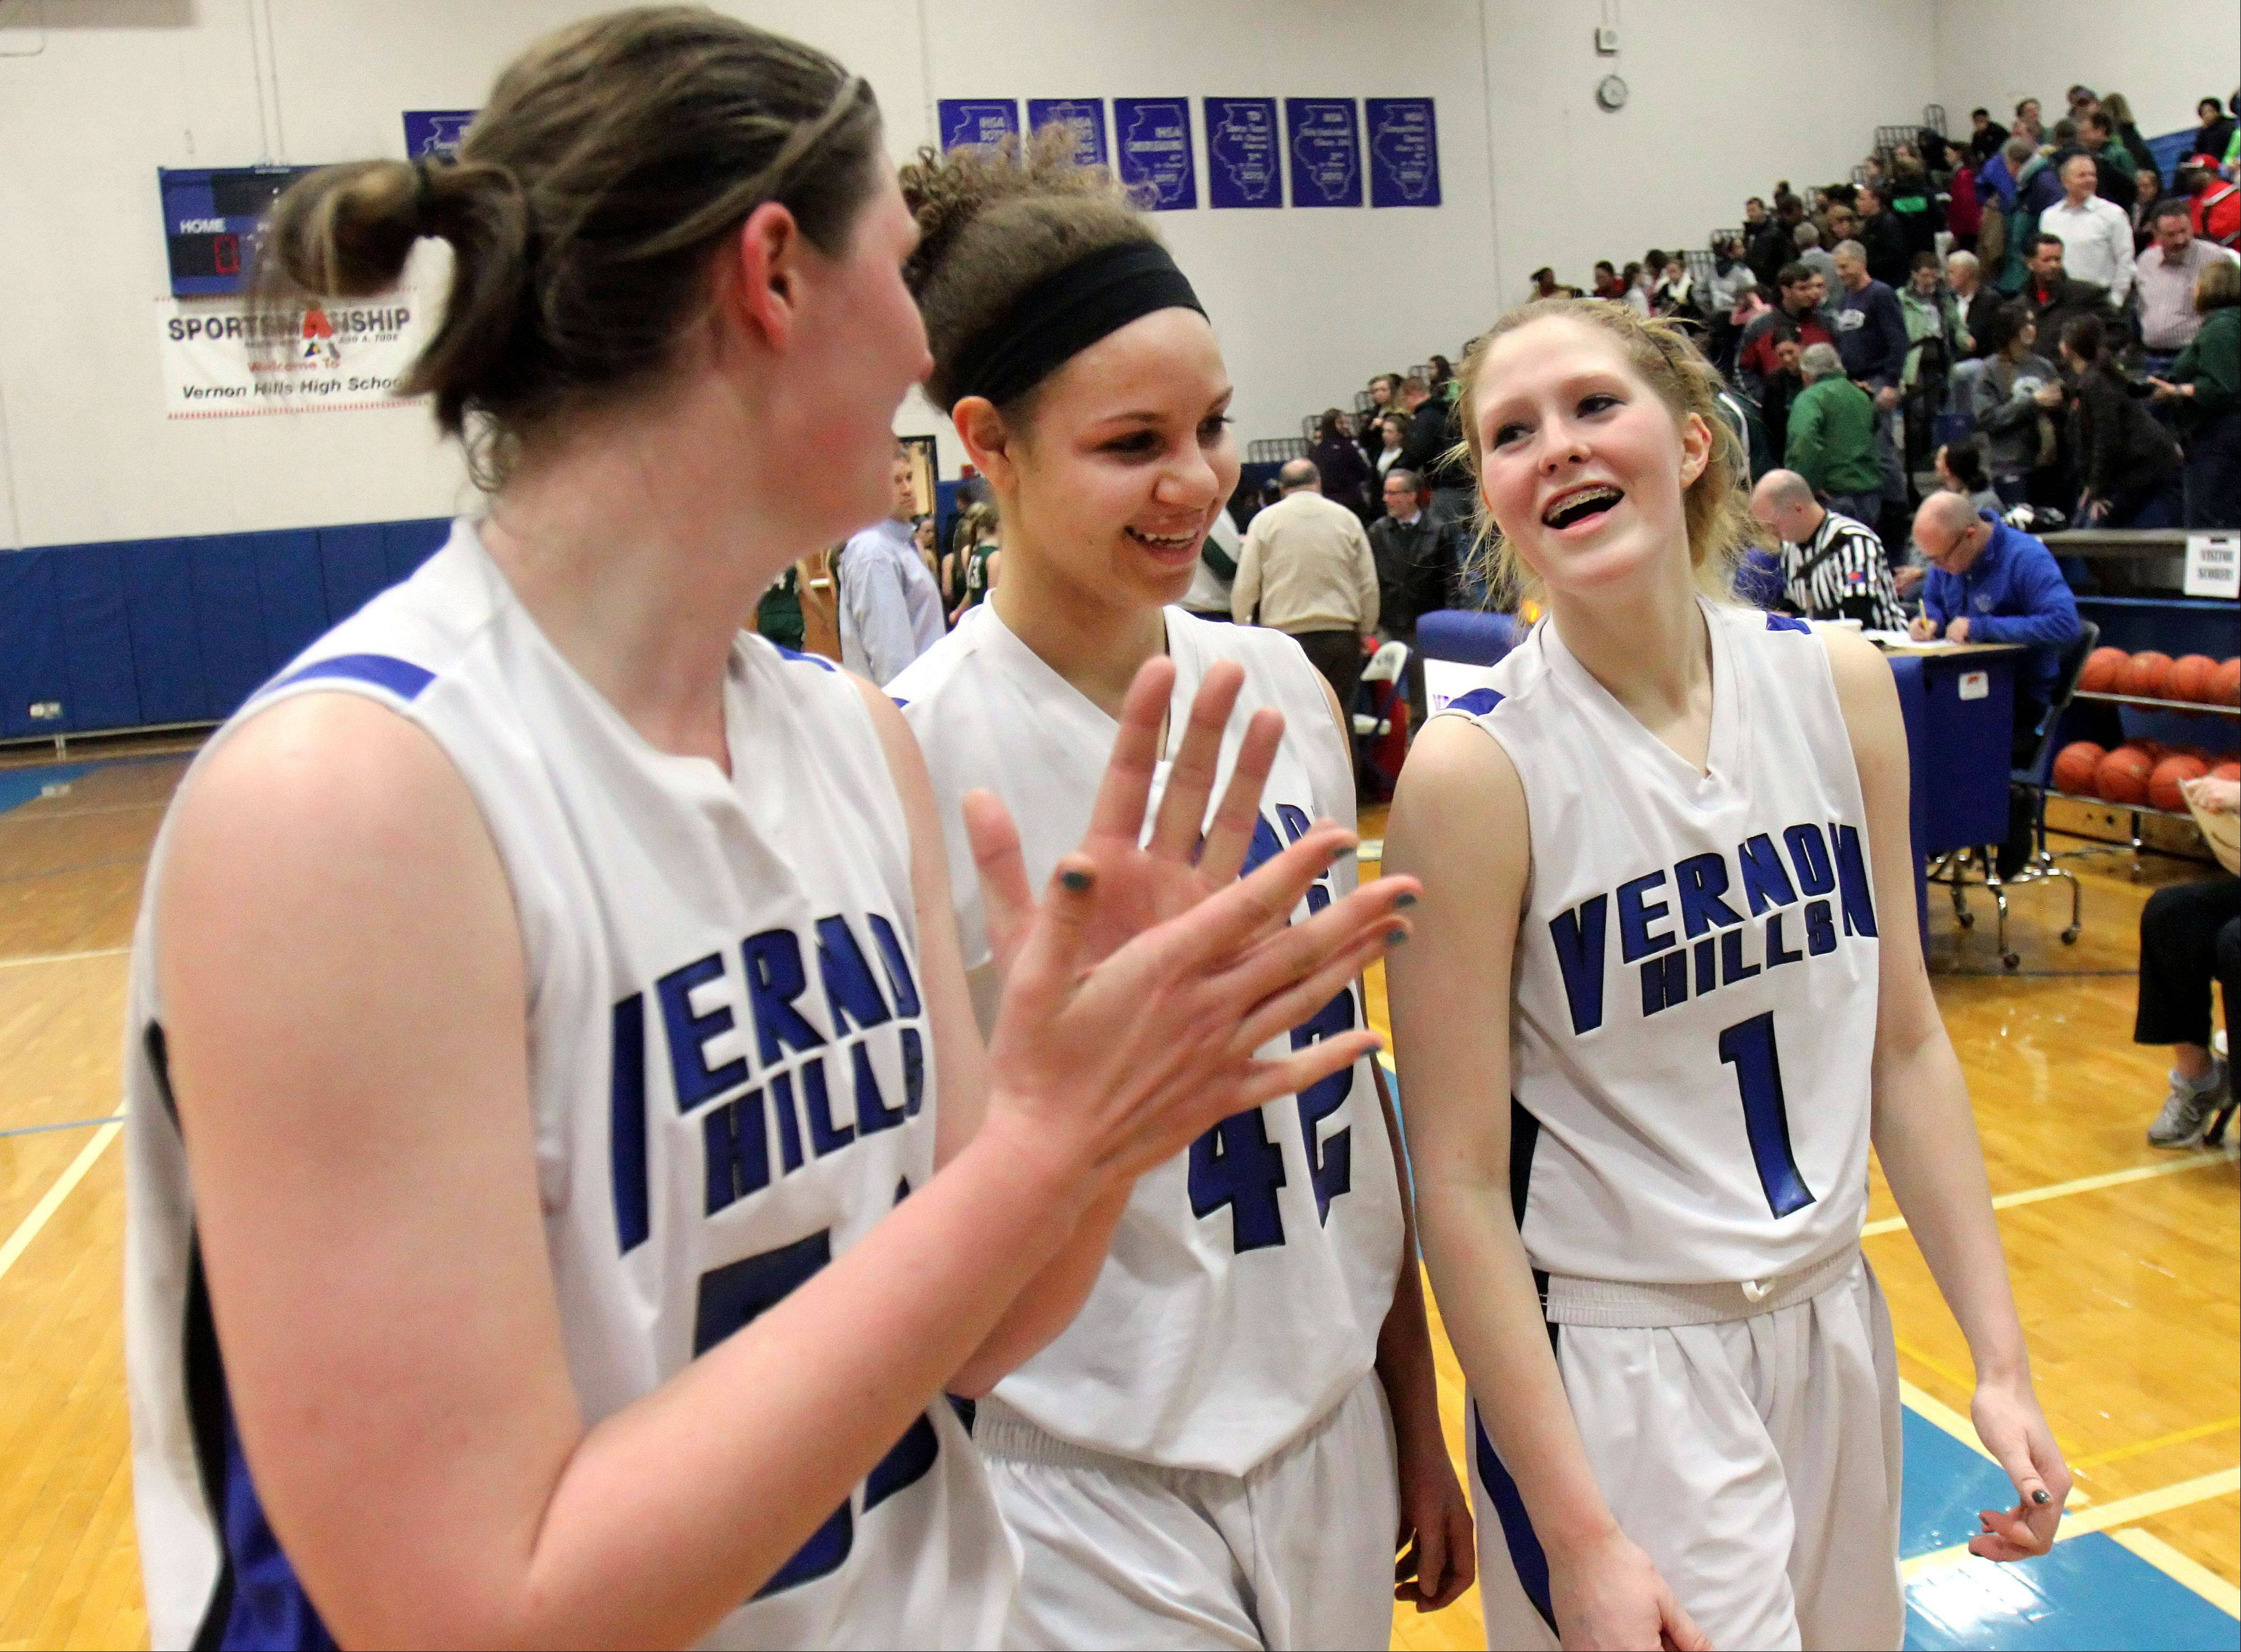 Images: Grayslake Central vs. Vernon Hills, girls basketball